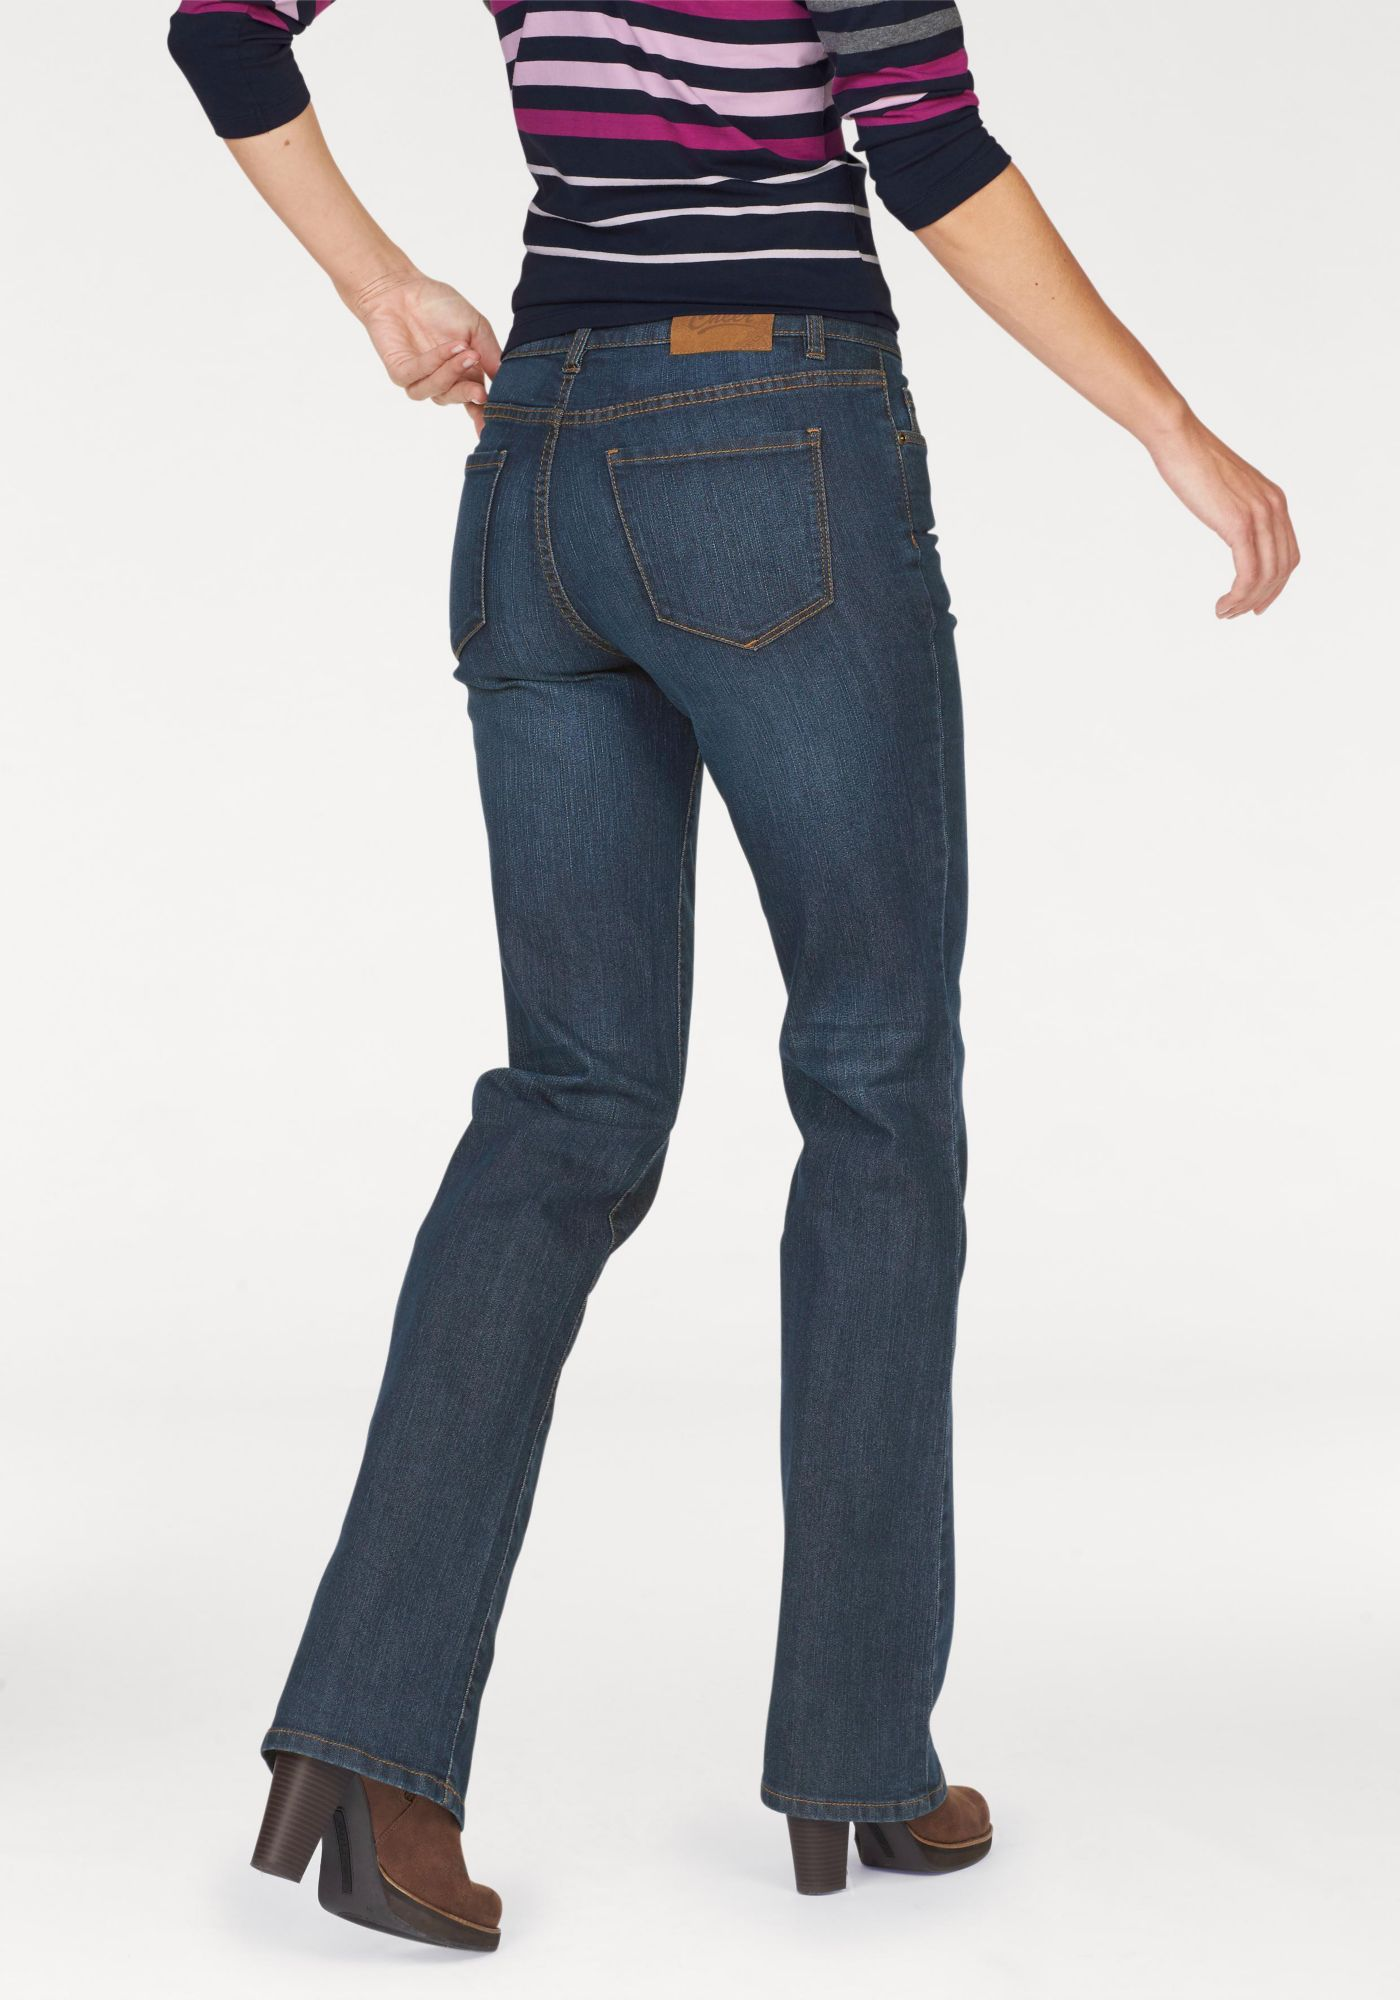 CHEER Cheer 5-Pocket-Jeans »Beate«